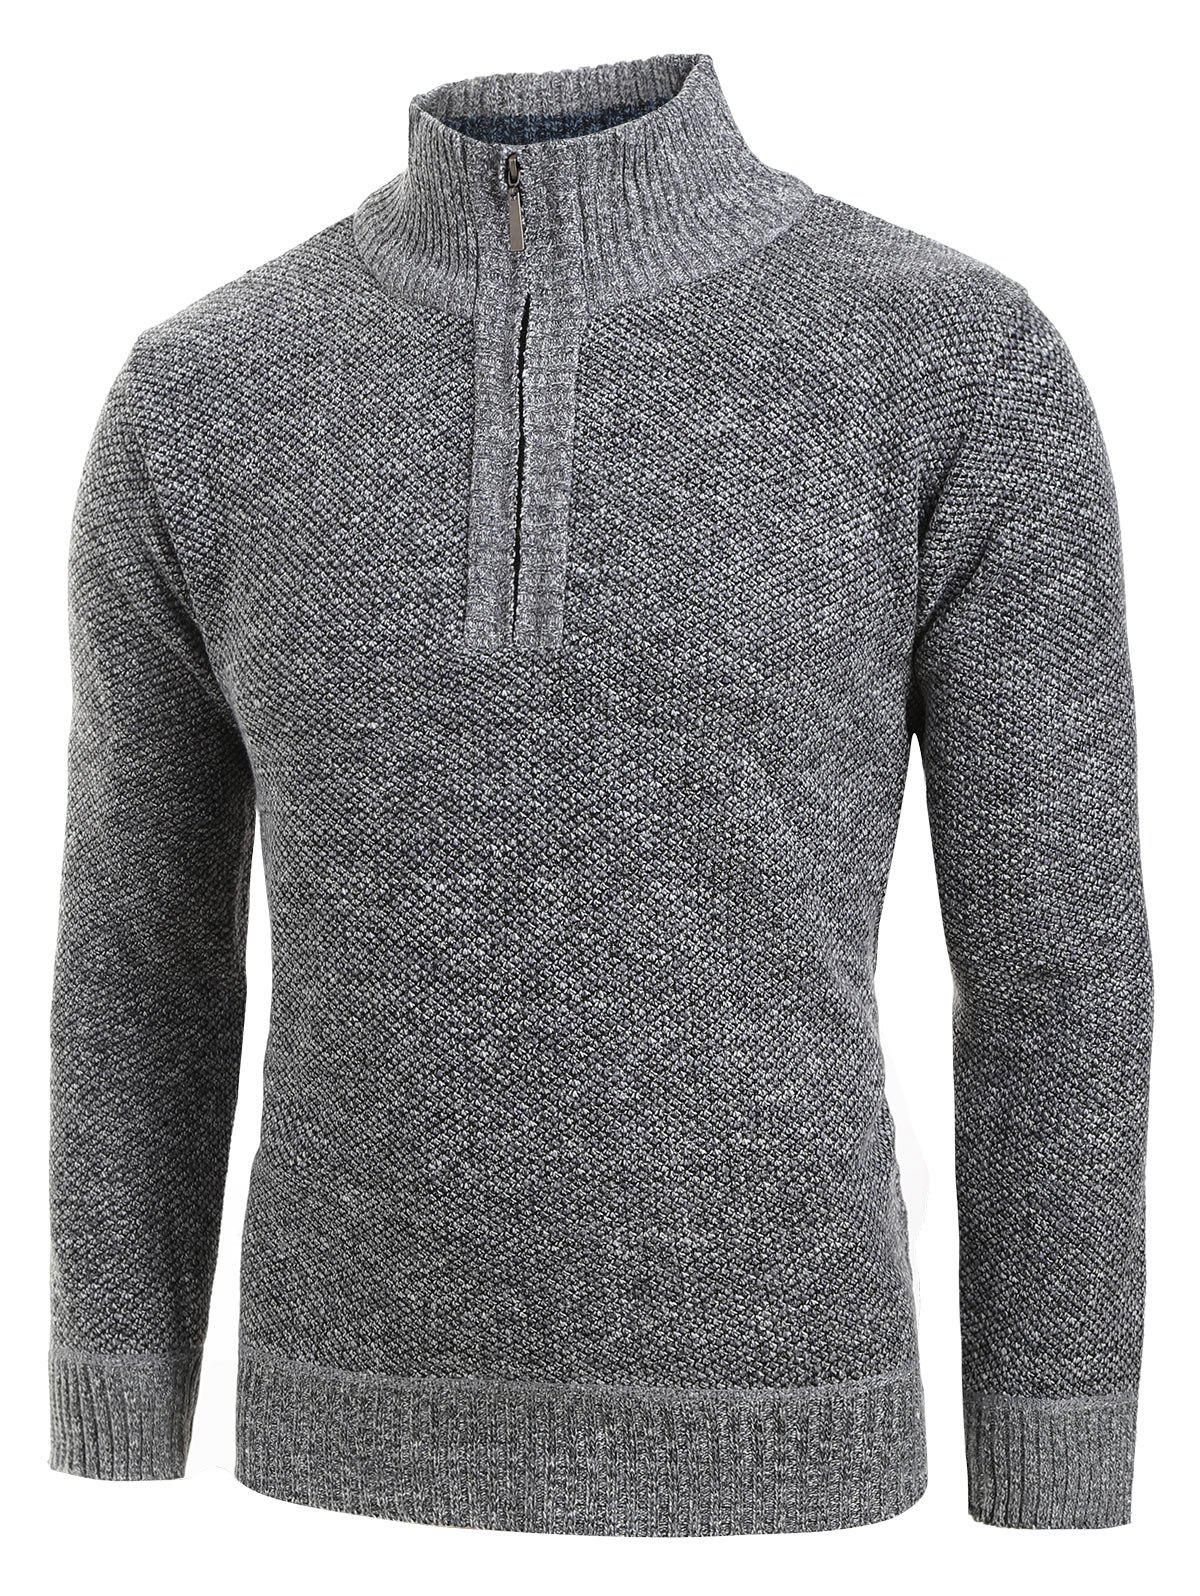 Quarter Solid Color Zip Pull Gris Foncé L